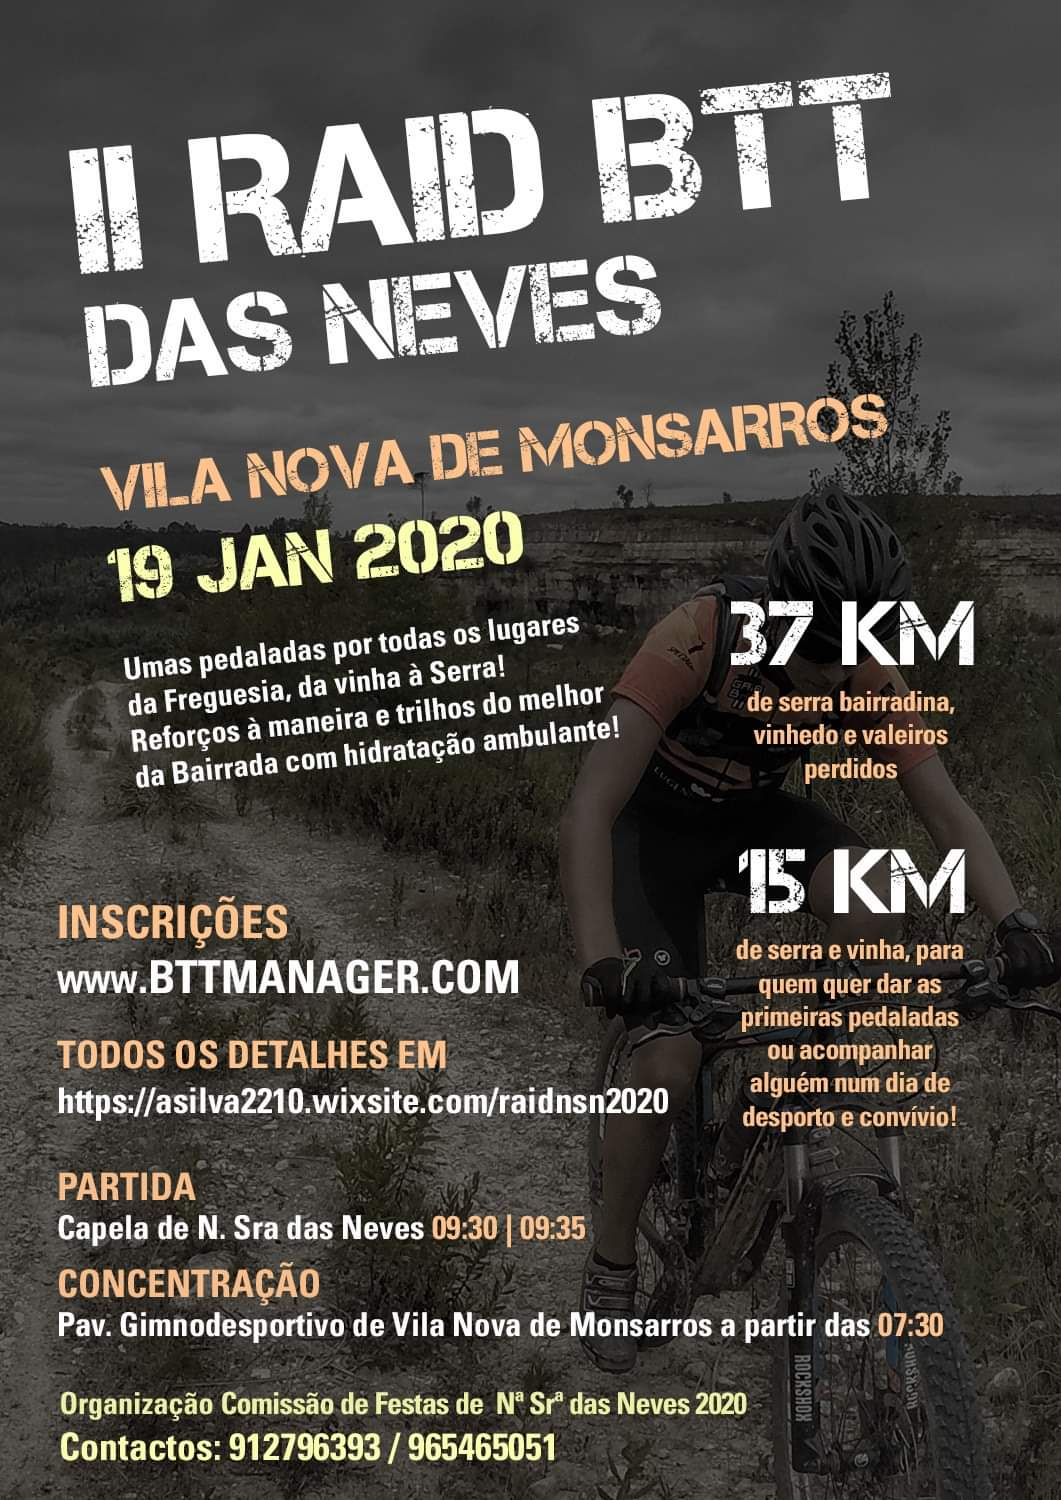 19JAN * VILA NOVA DE MONSARROS - ANADIA